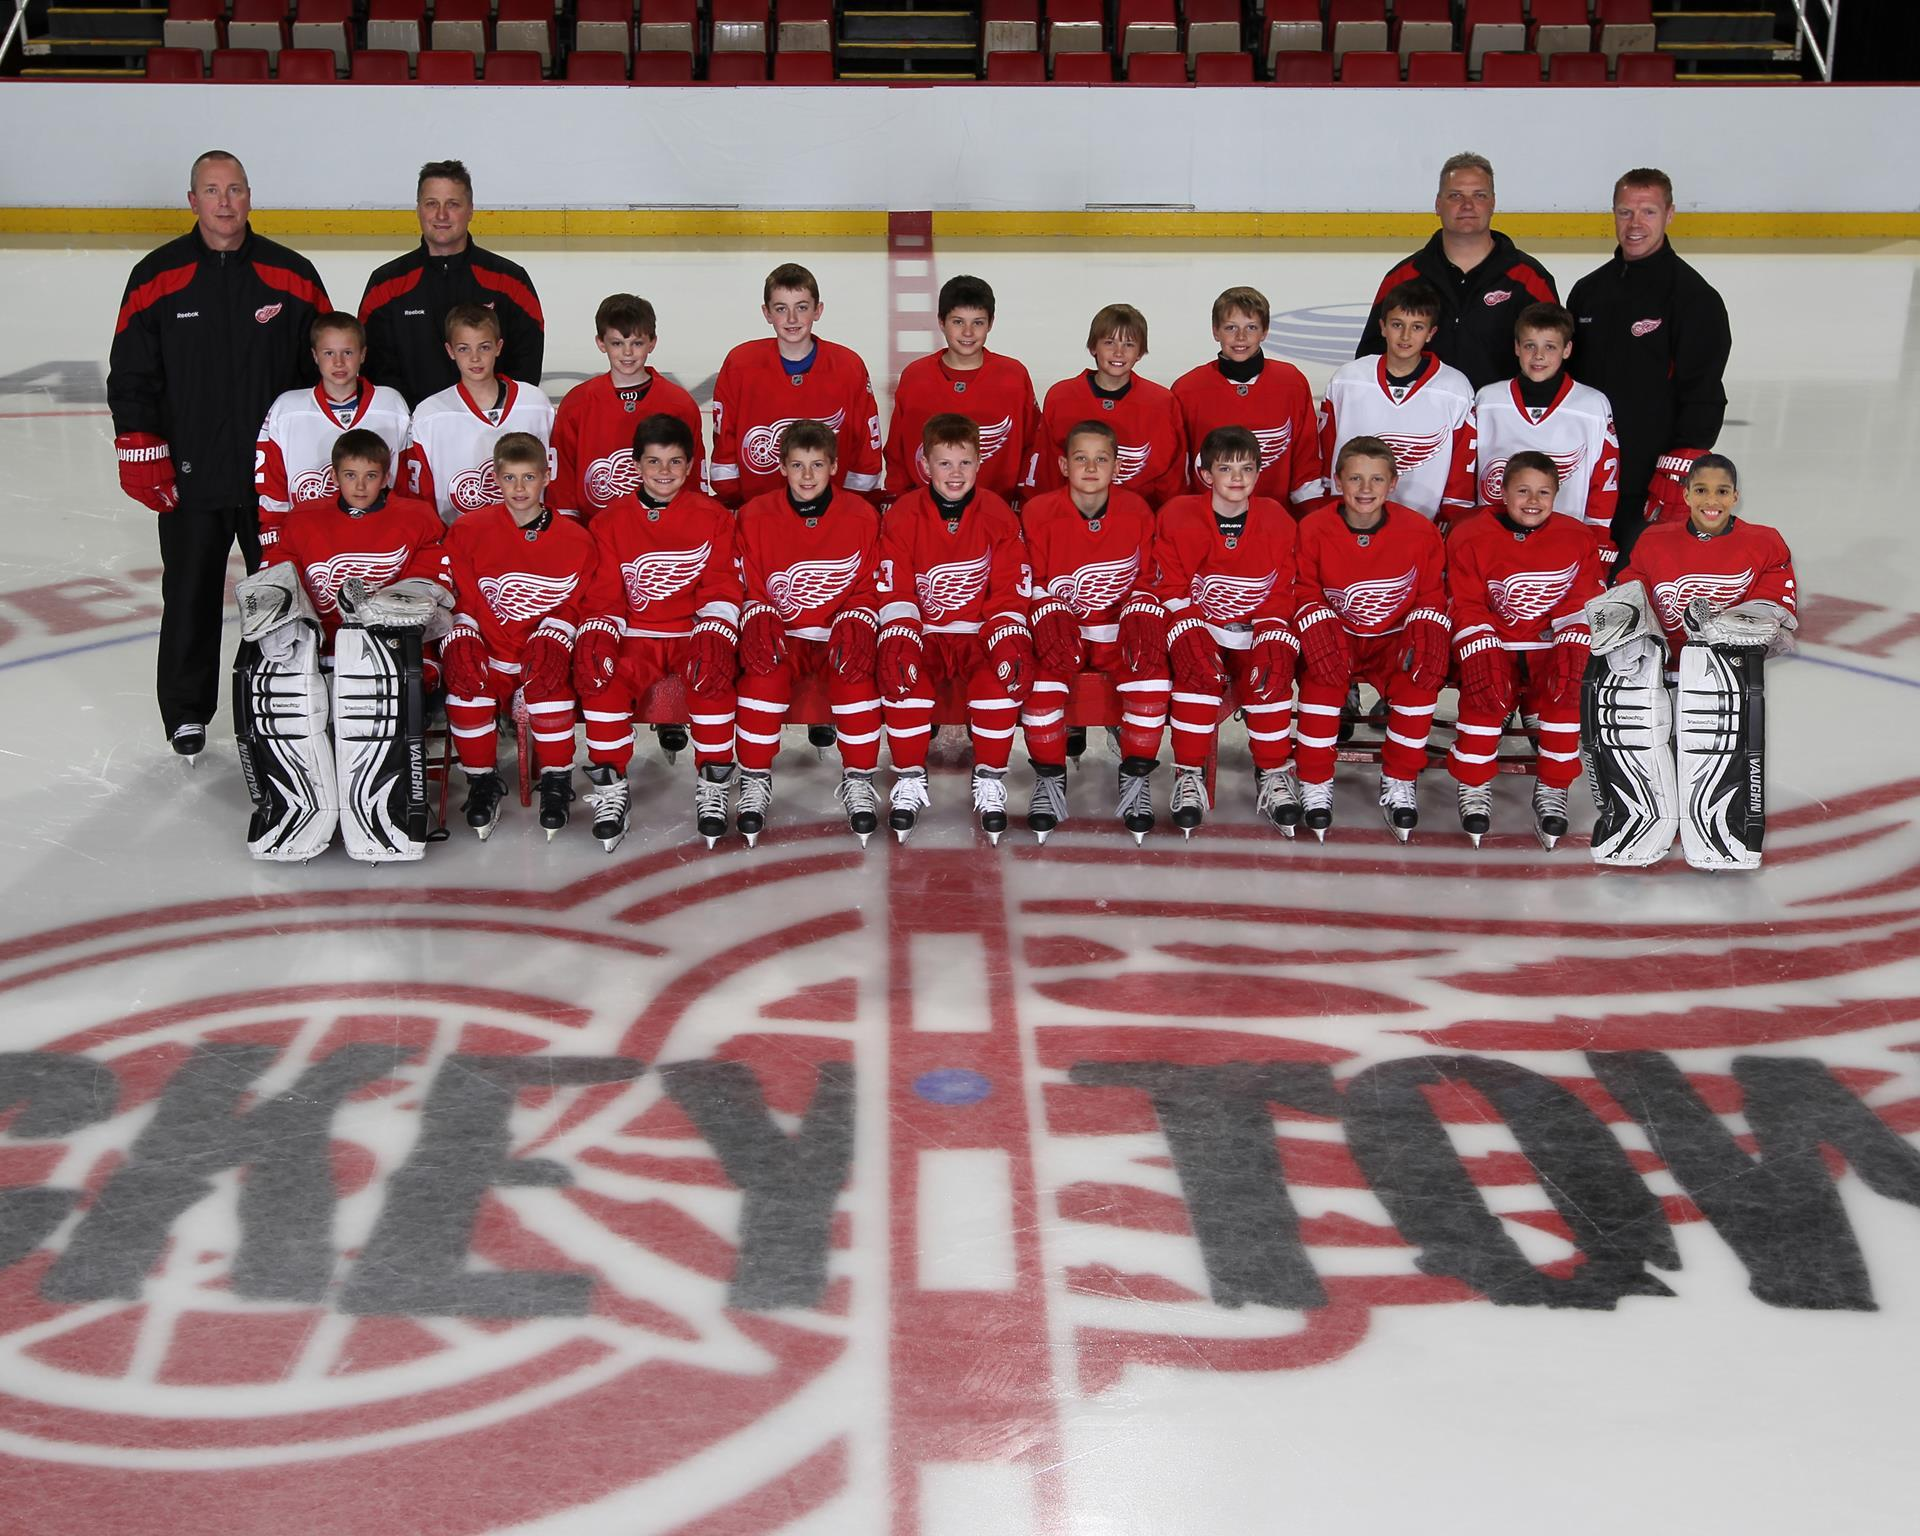 detroit red wings and bias Check out what we have available for other upcoming events, or try getting tickets directly from the detroit red wings site see upcoming events go to team's website.